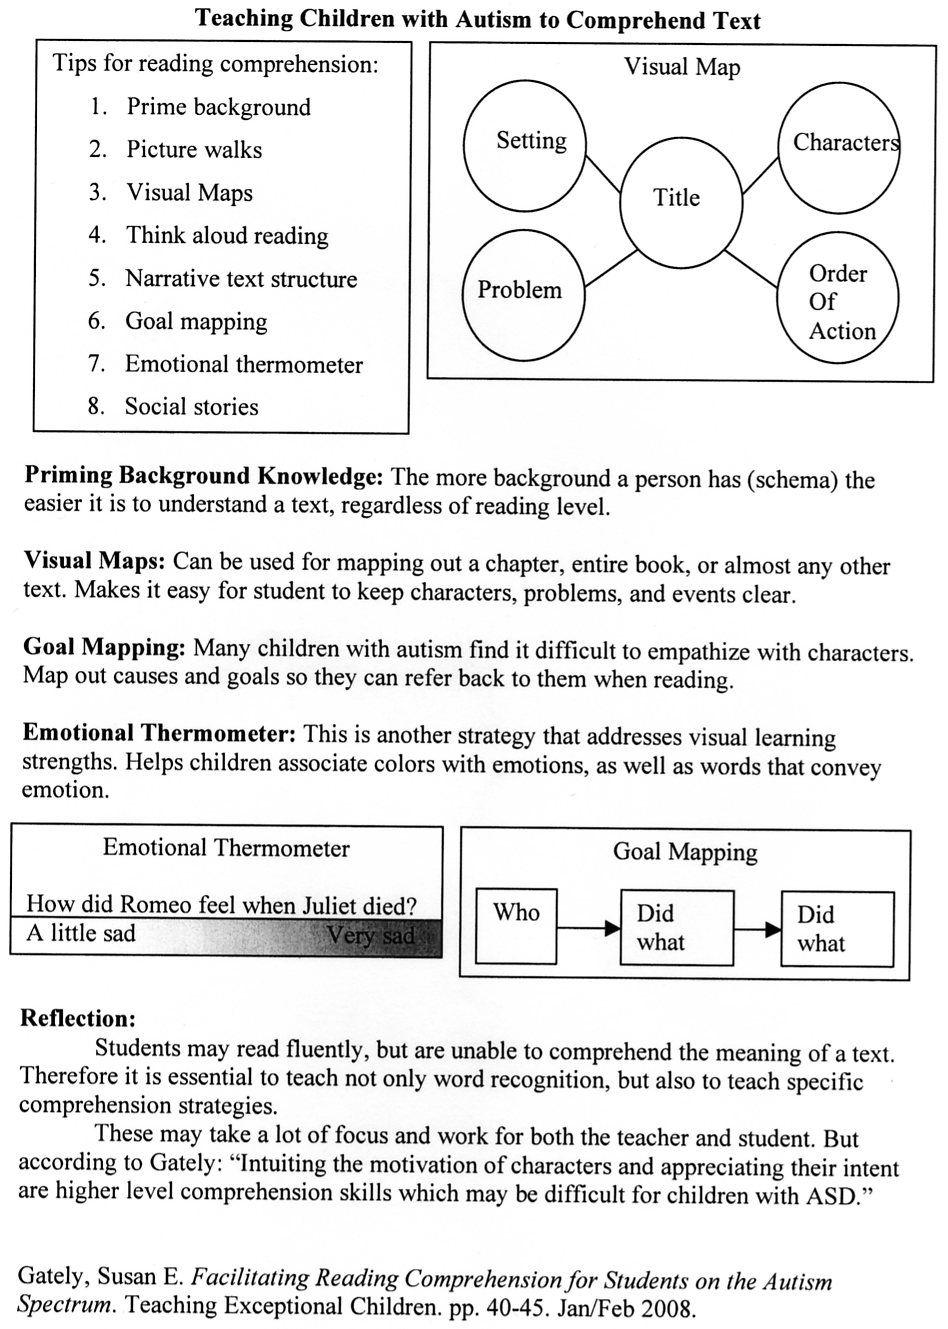 Teaching To Read Reading Comprehension Reading Comprehension Worksheets Teaching Reading Skills [ 1329 x 948 Pixel ]